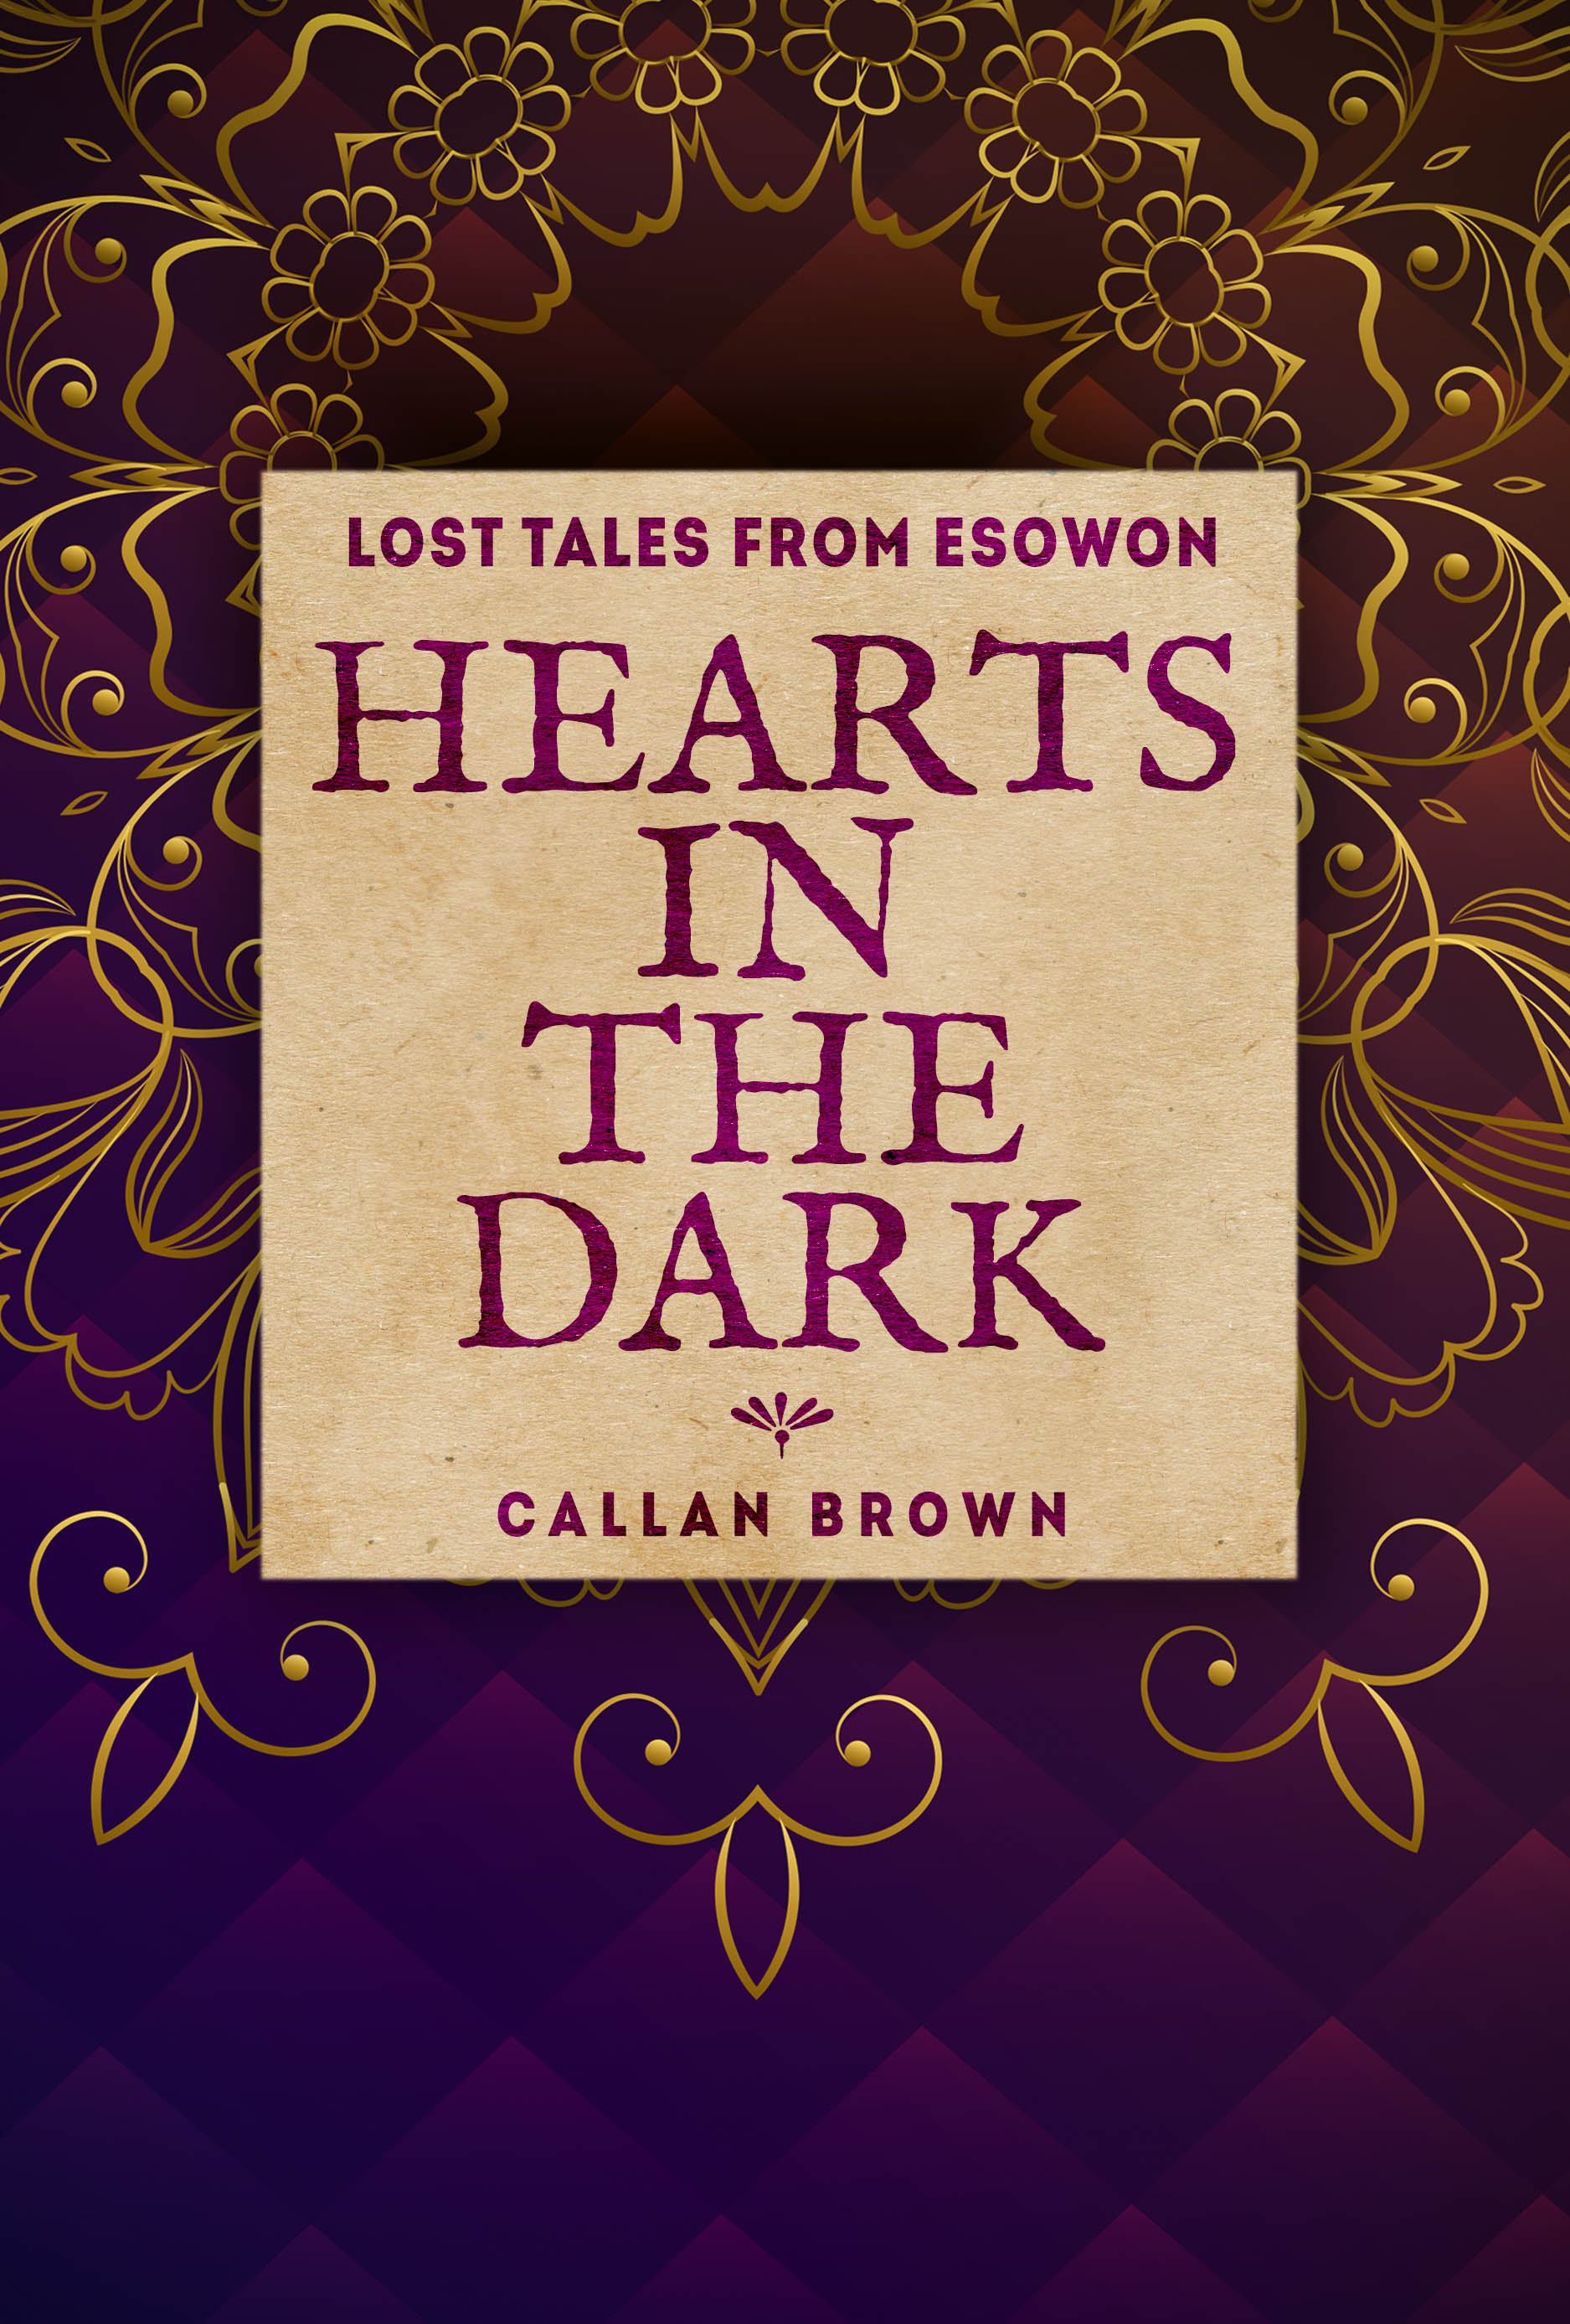 HEARTS IN THE DARK - SHE'S A PRINCESS. HE'S A DEMON. BOTH ARE FIGHTING FOR CONTROL.◦ PRE-ORDER